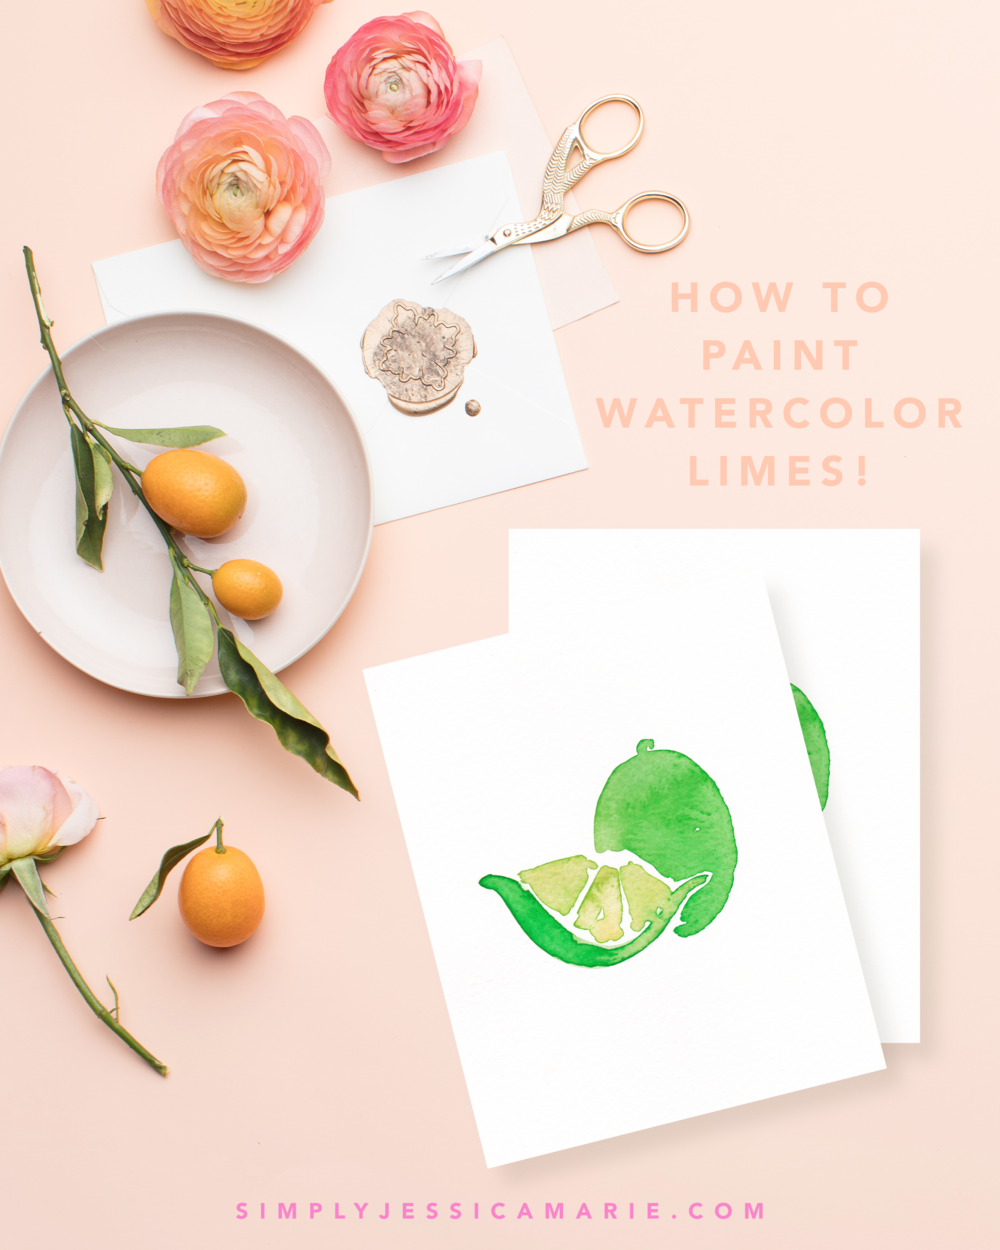 How-to-Paint-Watercolor-Limes-by-Simply-Jessica-Marie.png